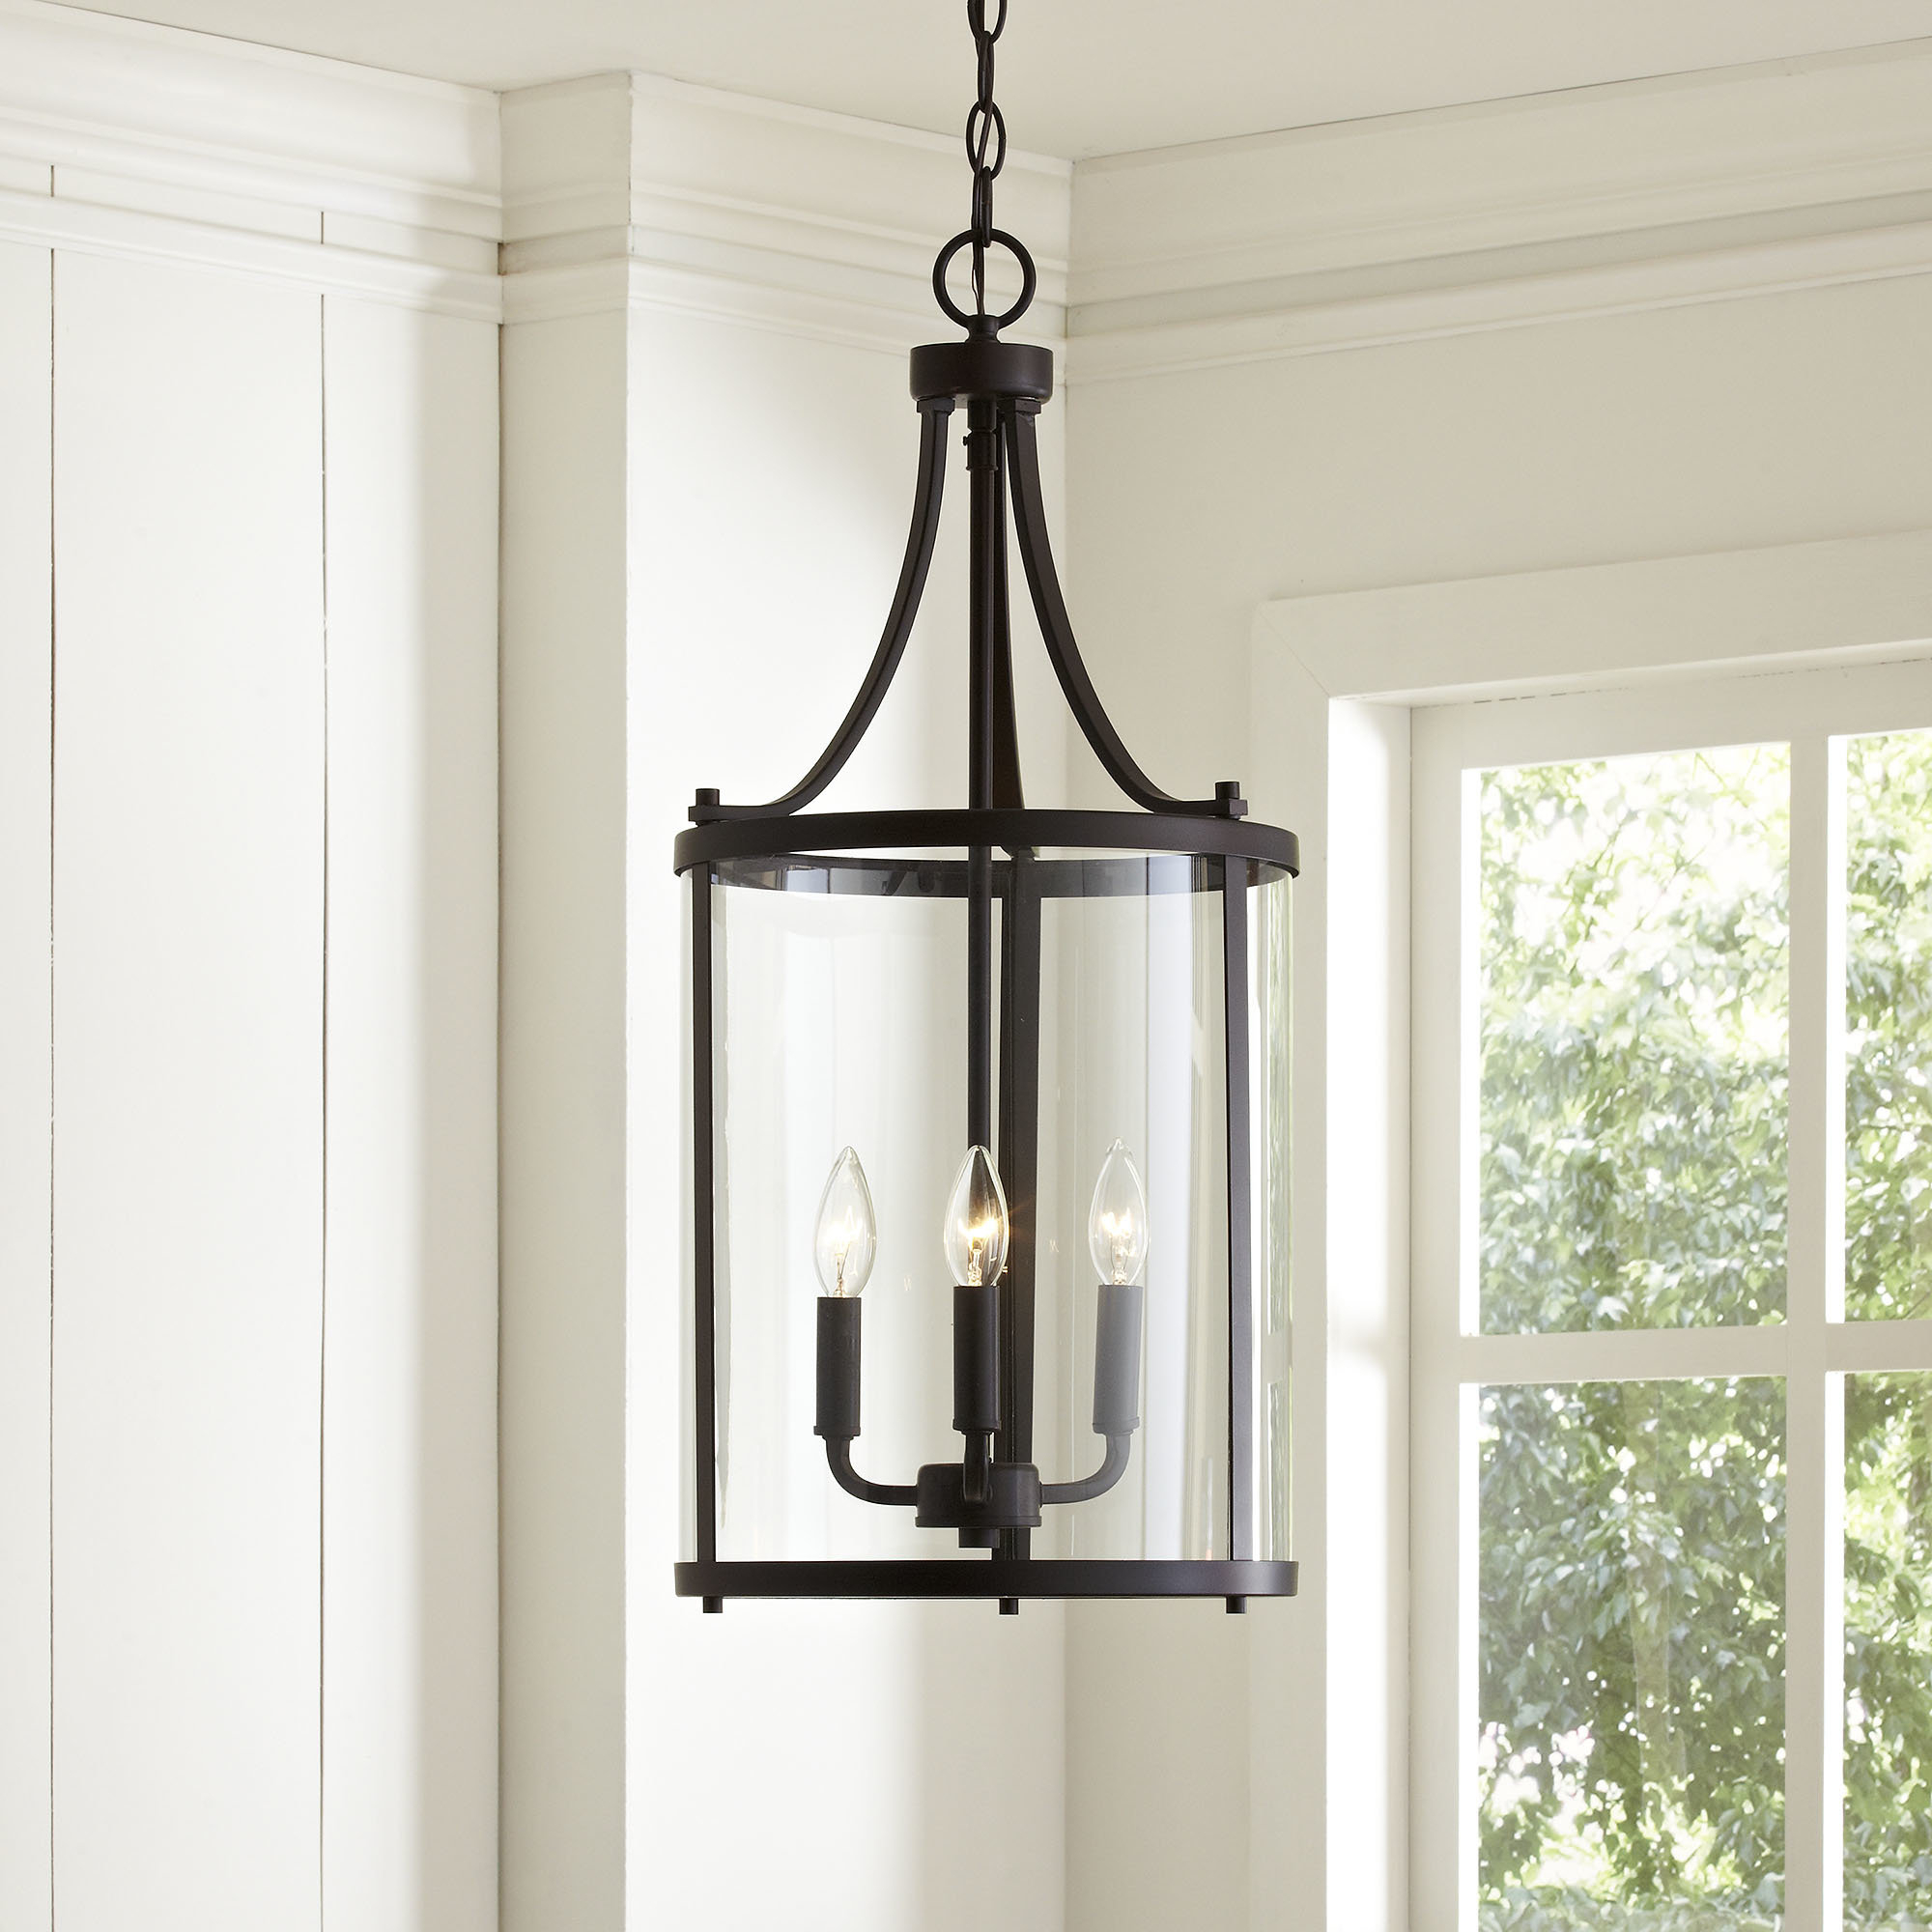 Popular 3 Light Lantern Cylinder Pendant For Gabriella 3 Light Lantern Chandeliers (Gallery 4 of 20)